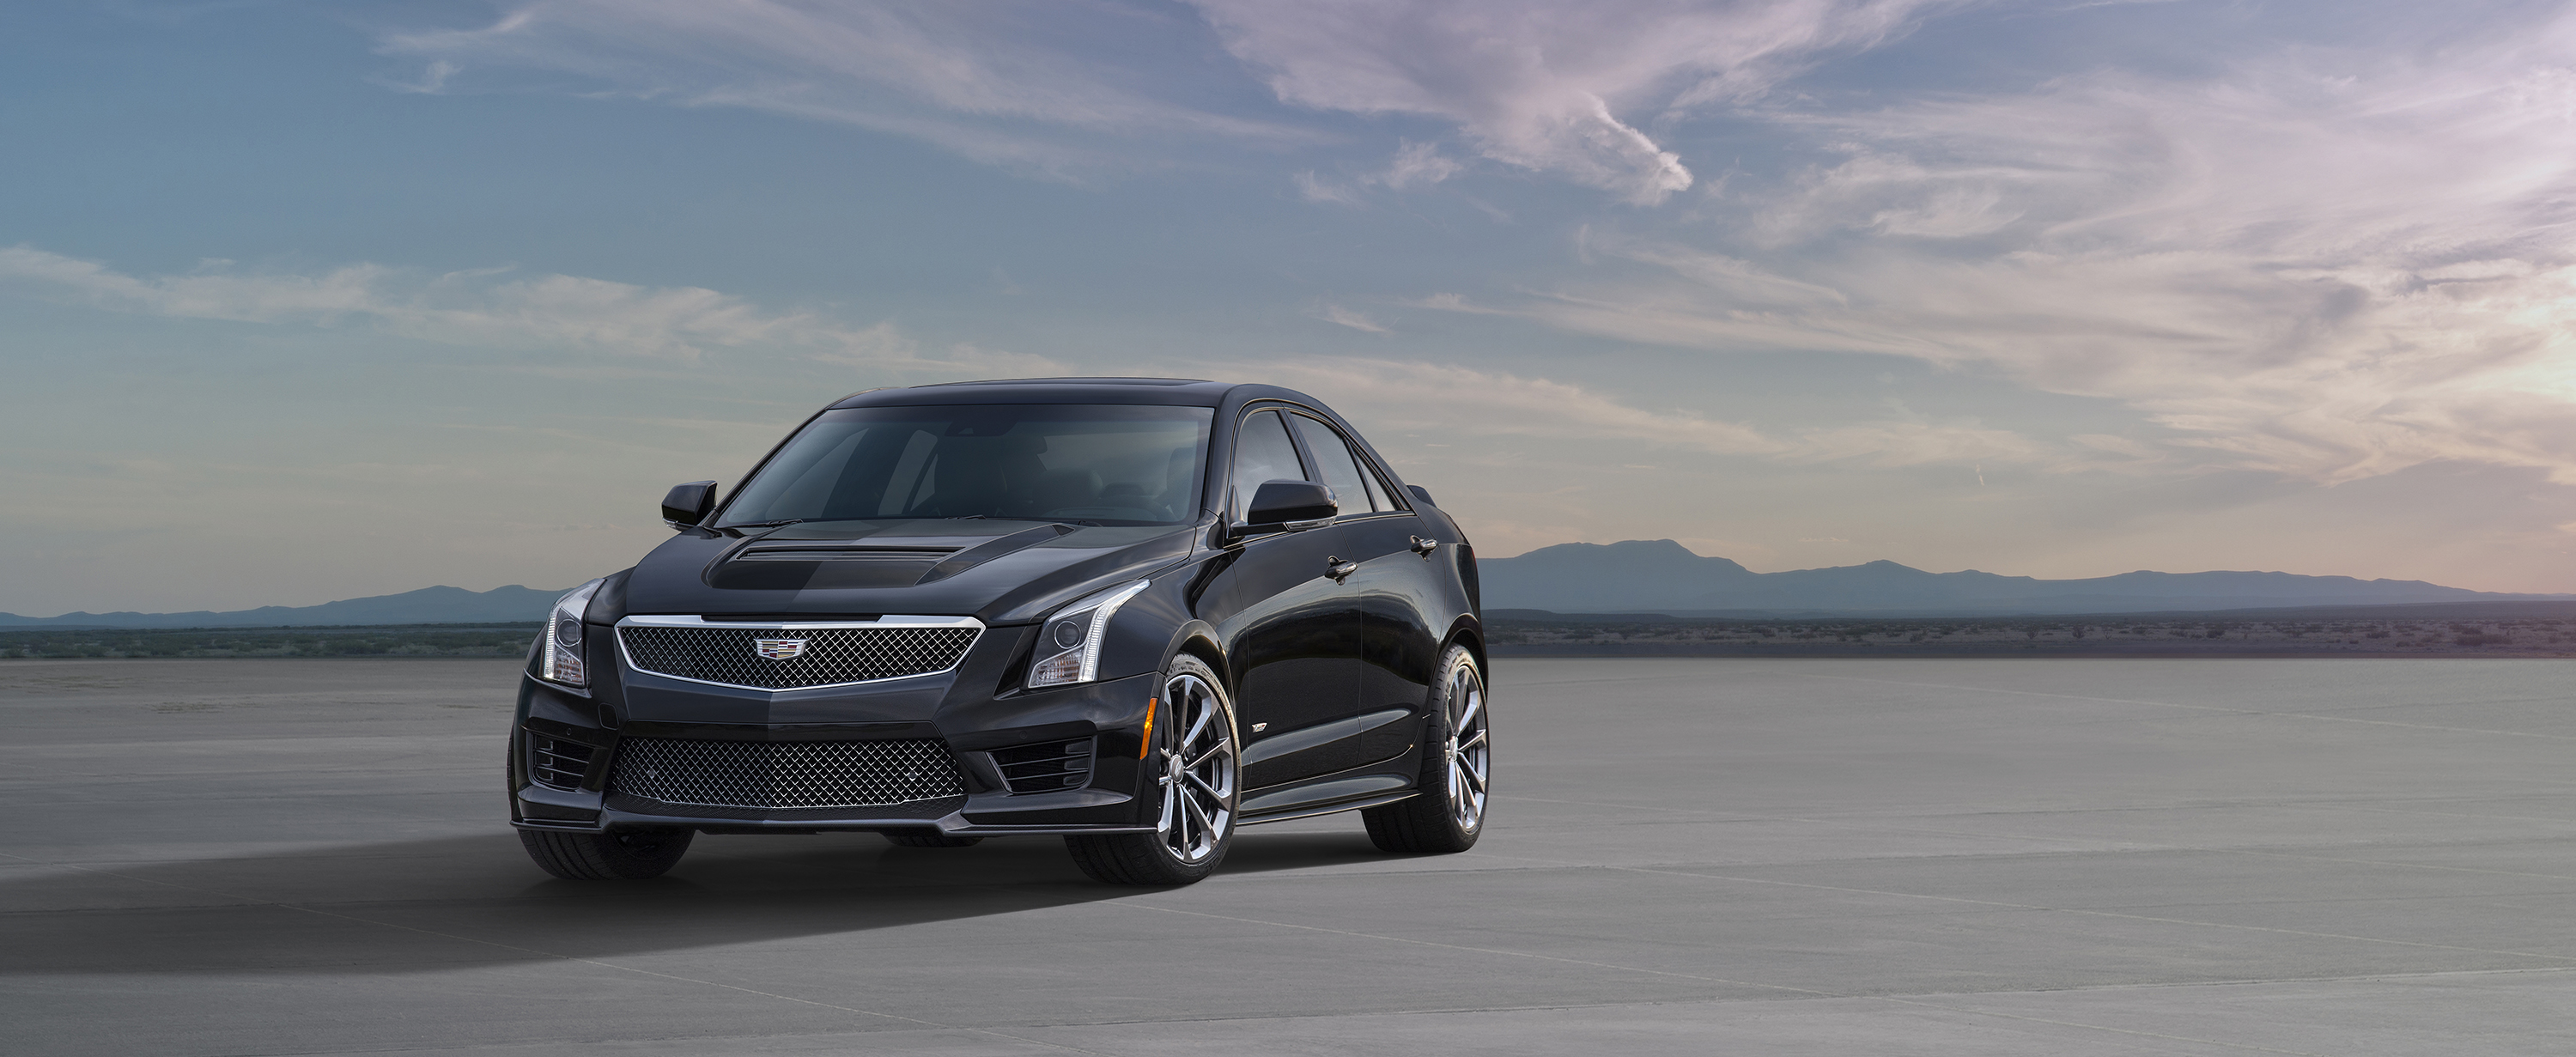 ats add mods com on vehicles v coupe replace cadillac